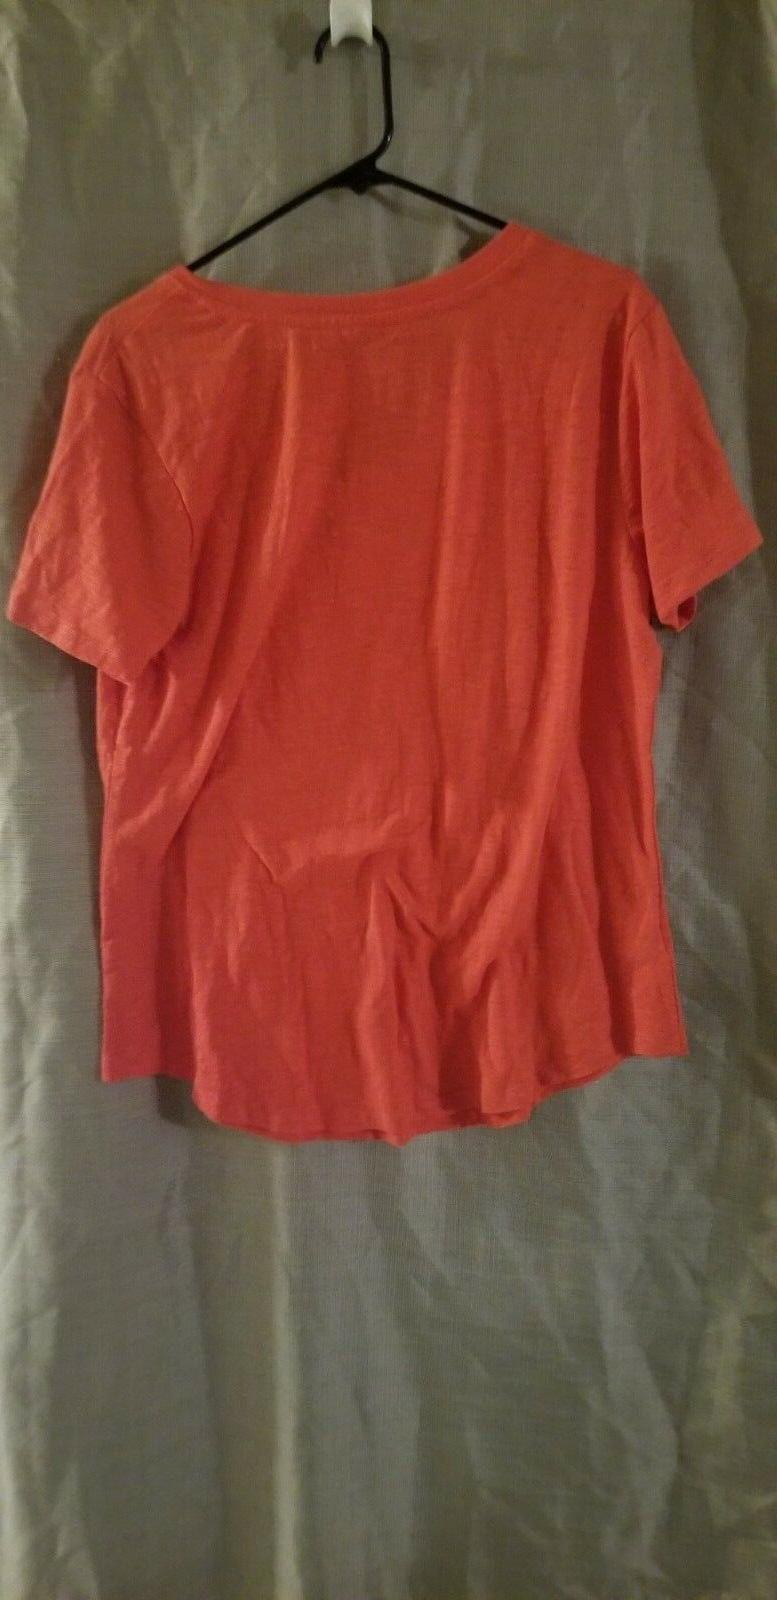 Z New Cotton Tee Shirt Top Extra Large